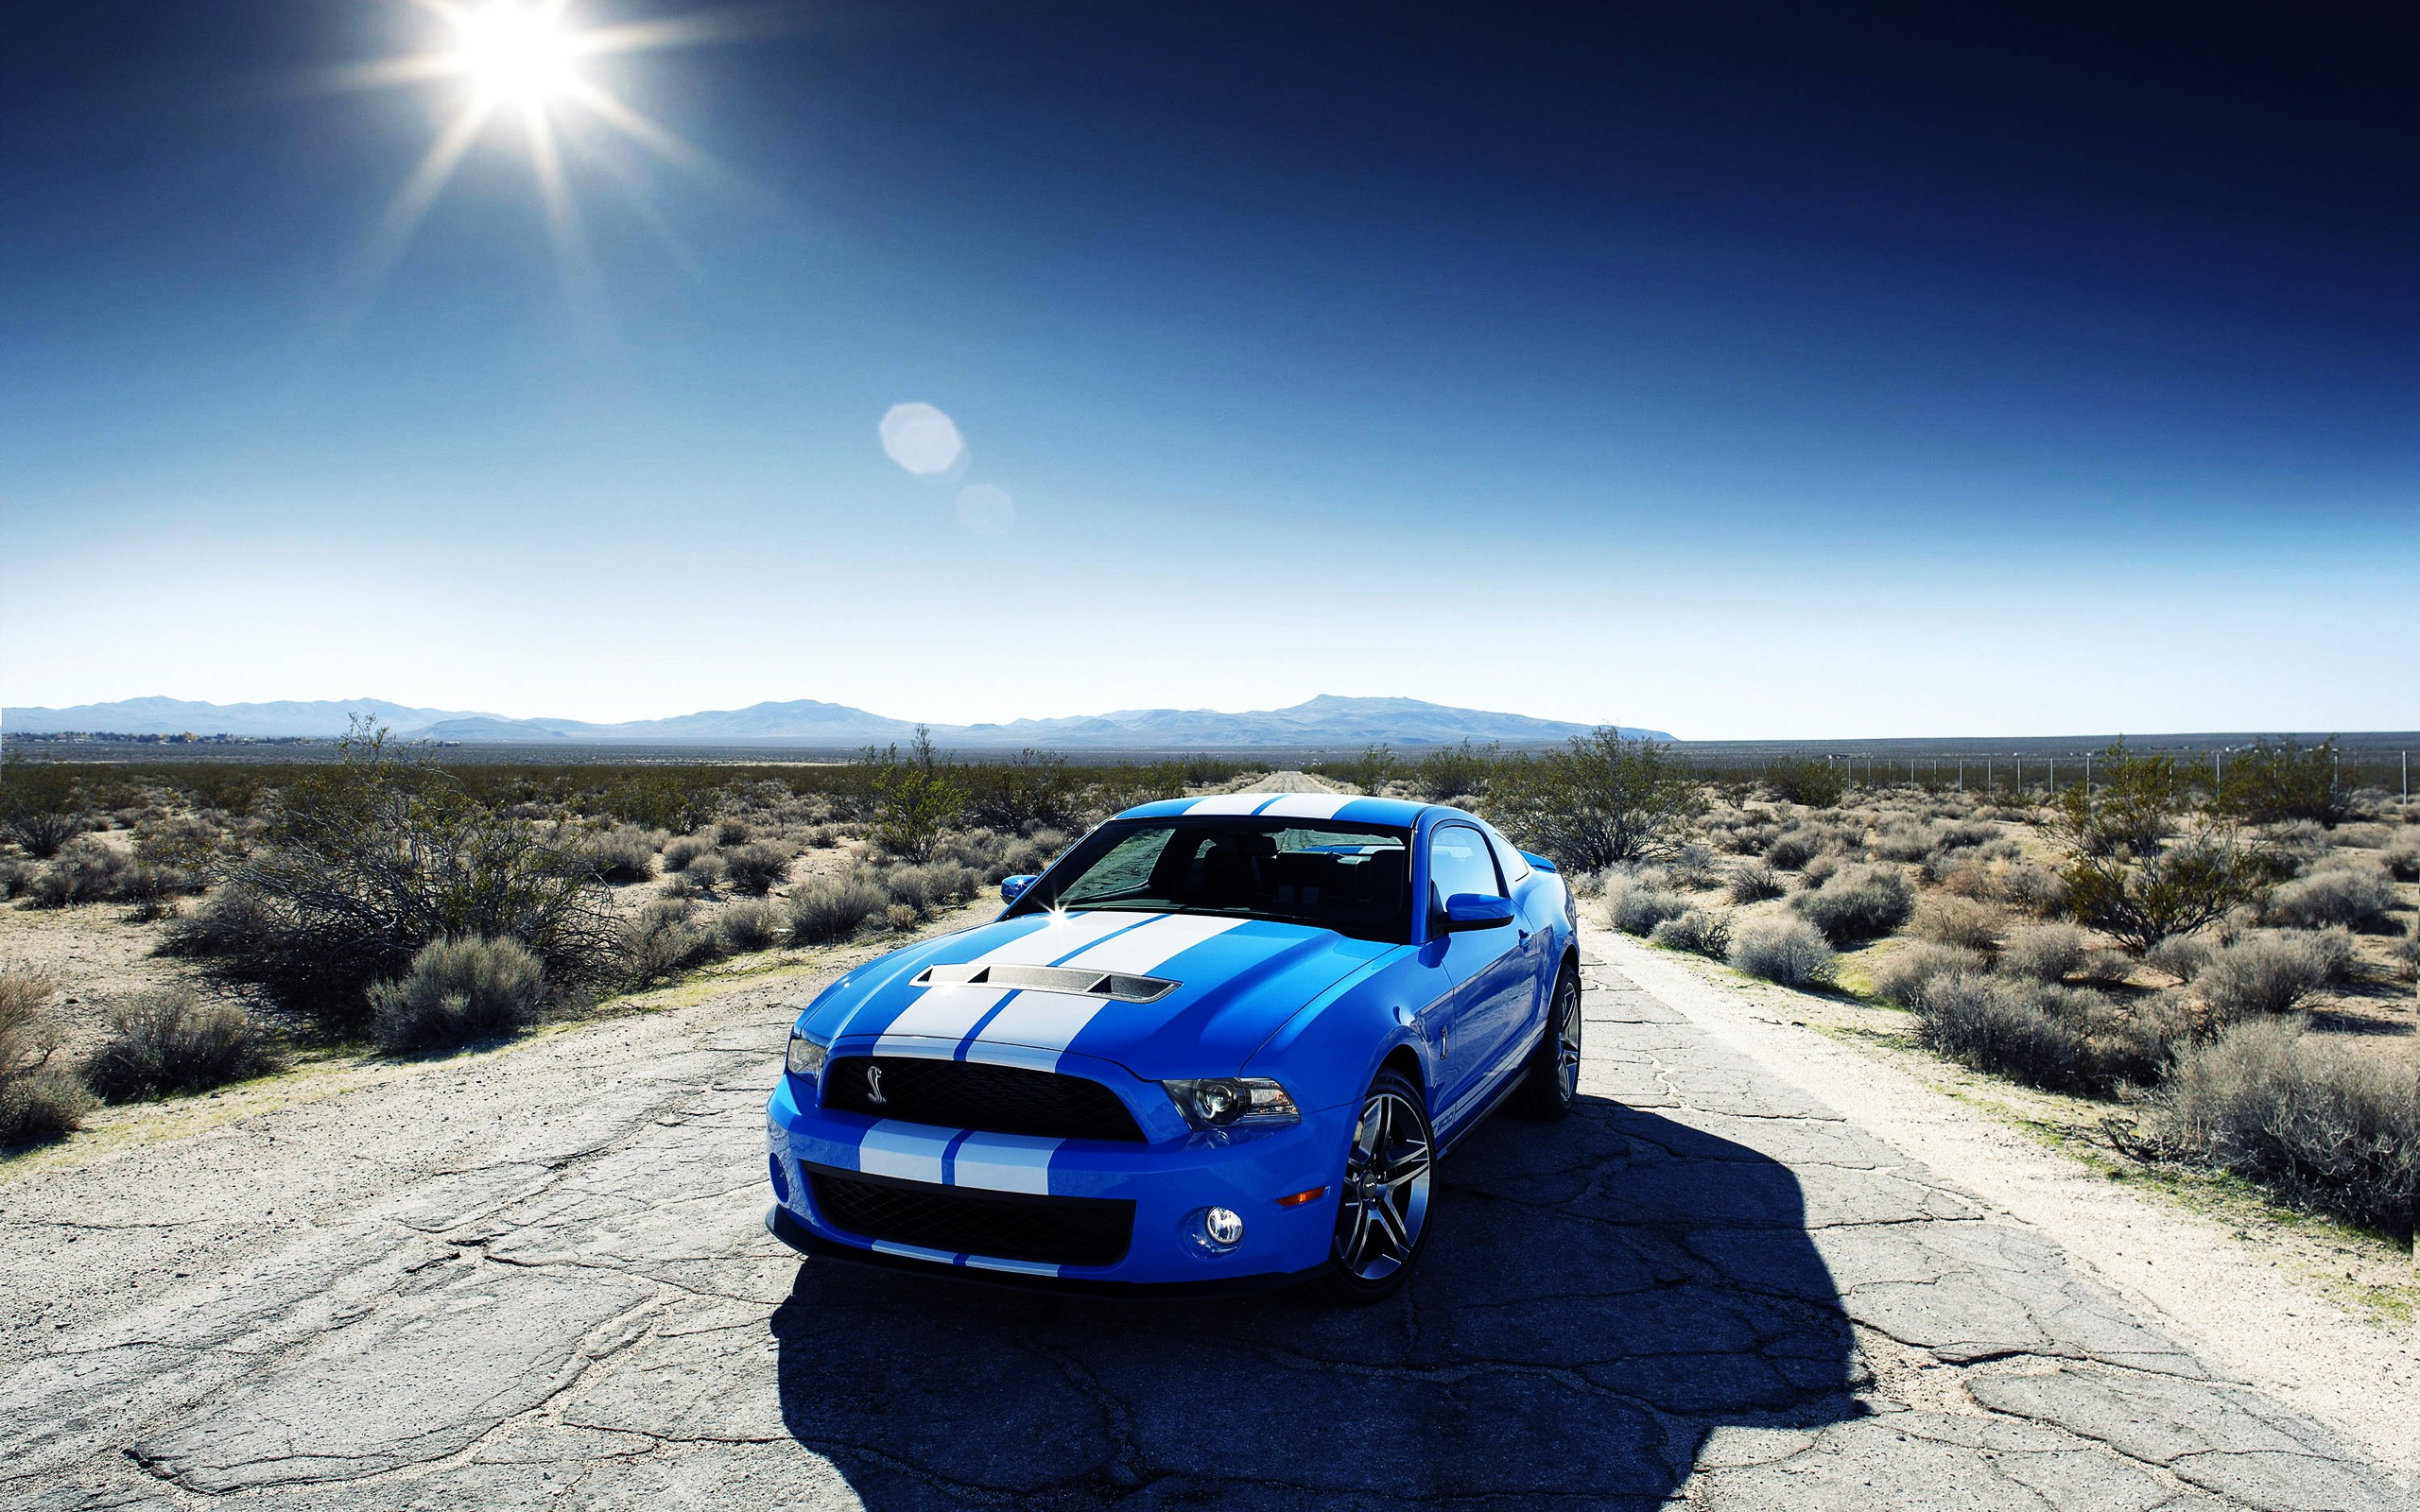 Best Collection of Mustang Wallpapers For Desktop Screens 2560x1600